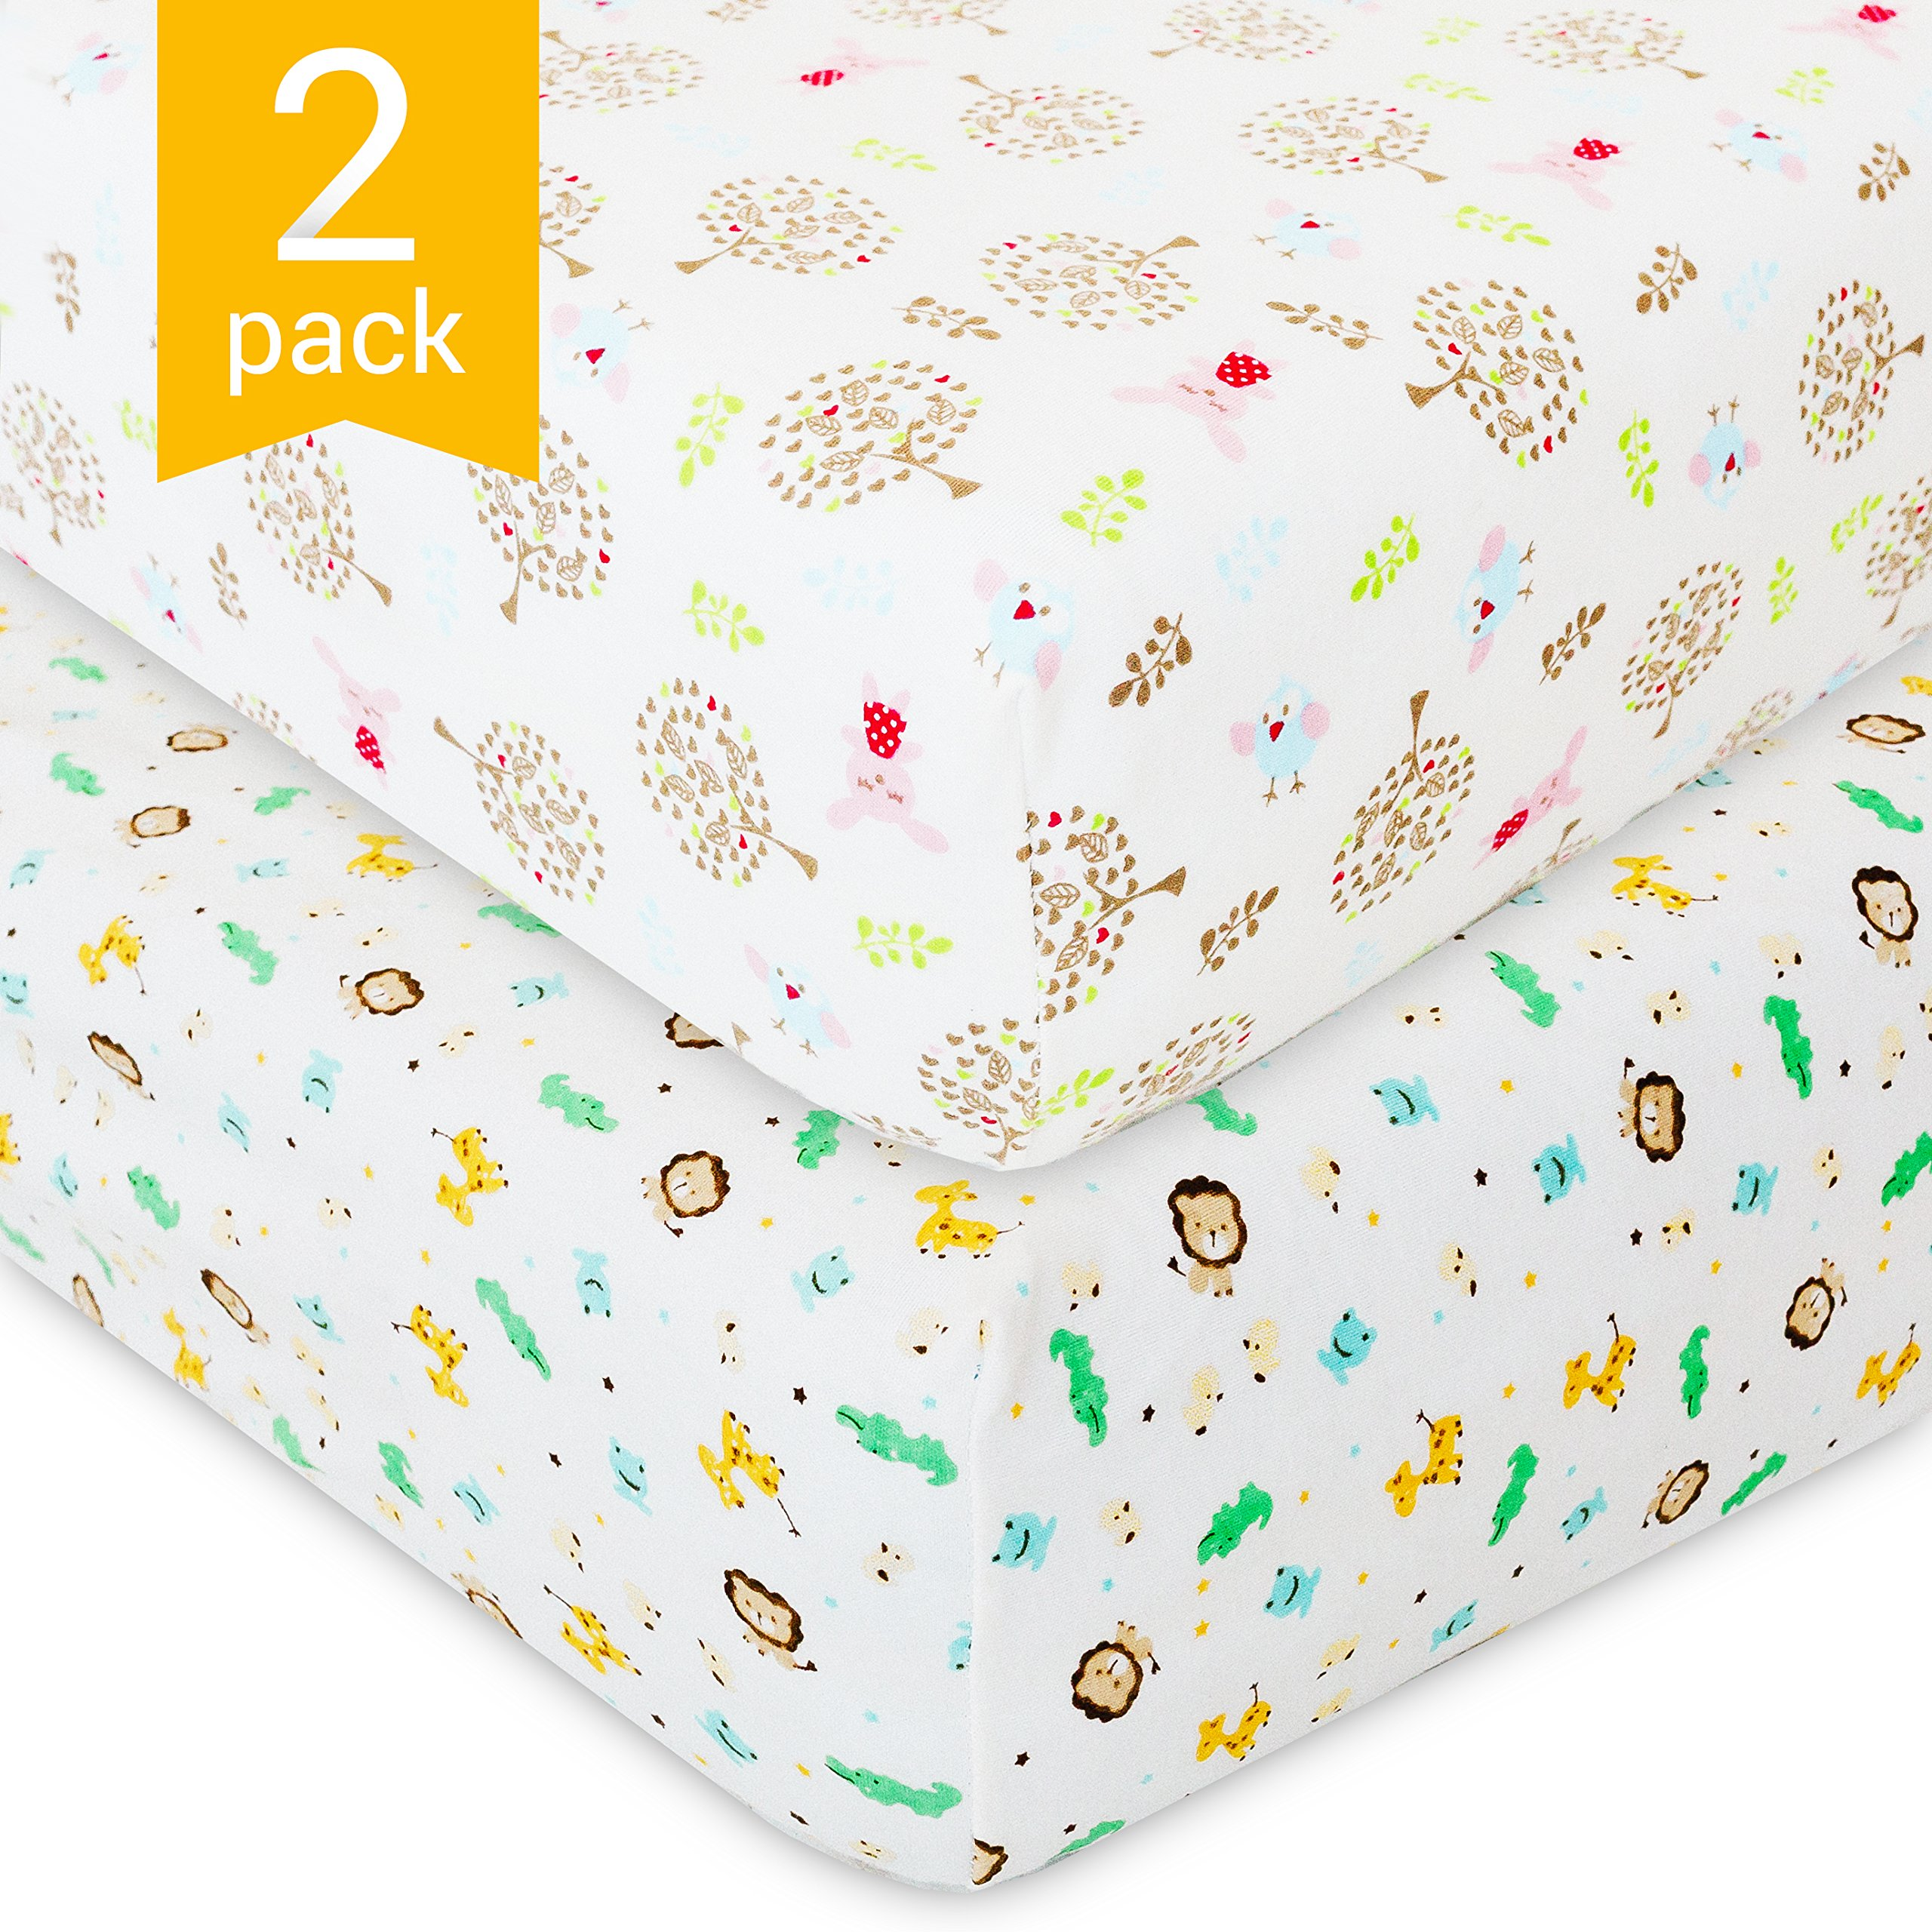 Crib Sheets for Baby - 2 Unisex Bedding Sheet Set - 100% Organic Fitted Jersey Cotton - Bed Mattress Cover - For Boys and Girls - Infant & Toddler - Rabbits and Lions Print - Great Baby Shower Gift